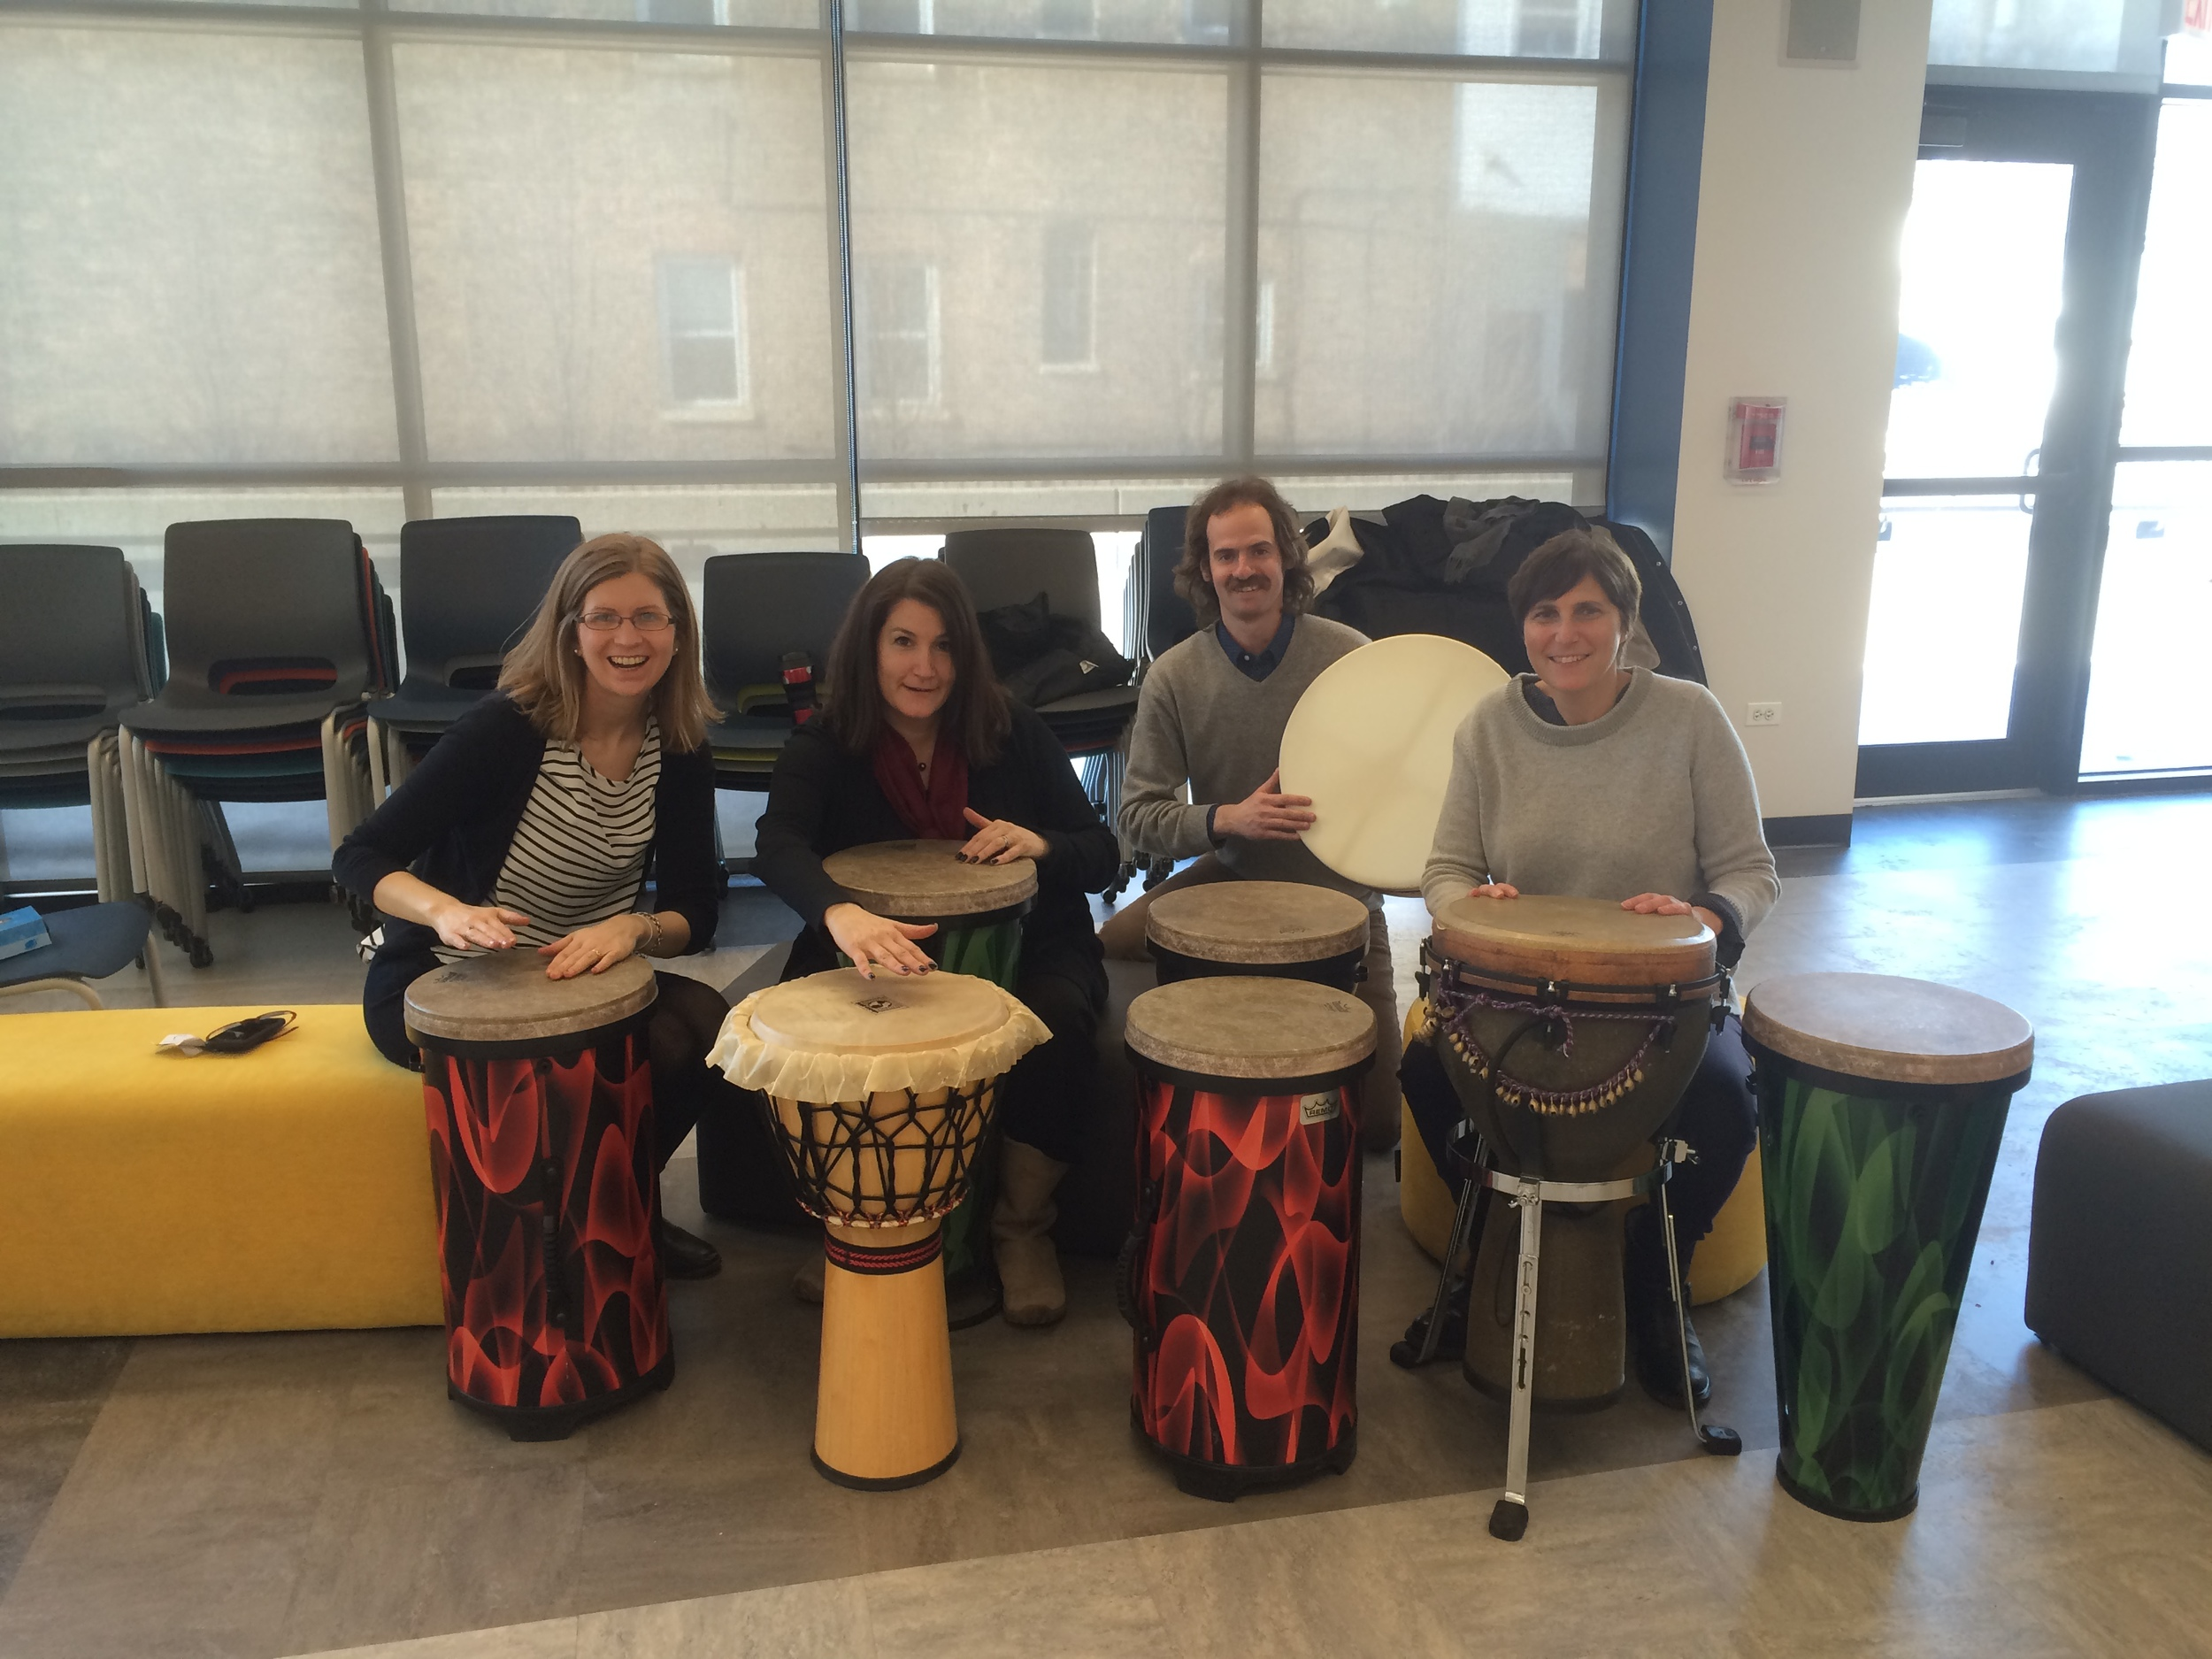 Wonderful Life Rhythms Workshop at the  Wolcott School  of Chicago February 10th 2015 !!!  Such an incredible Staff !!!